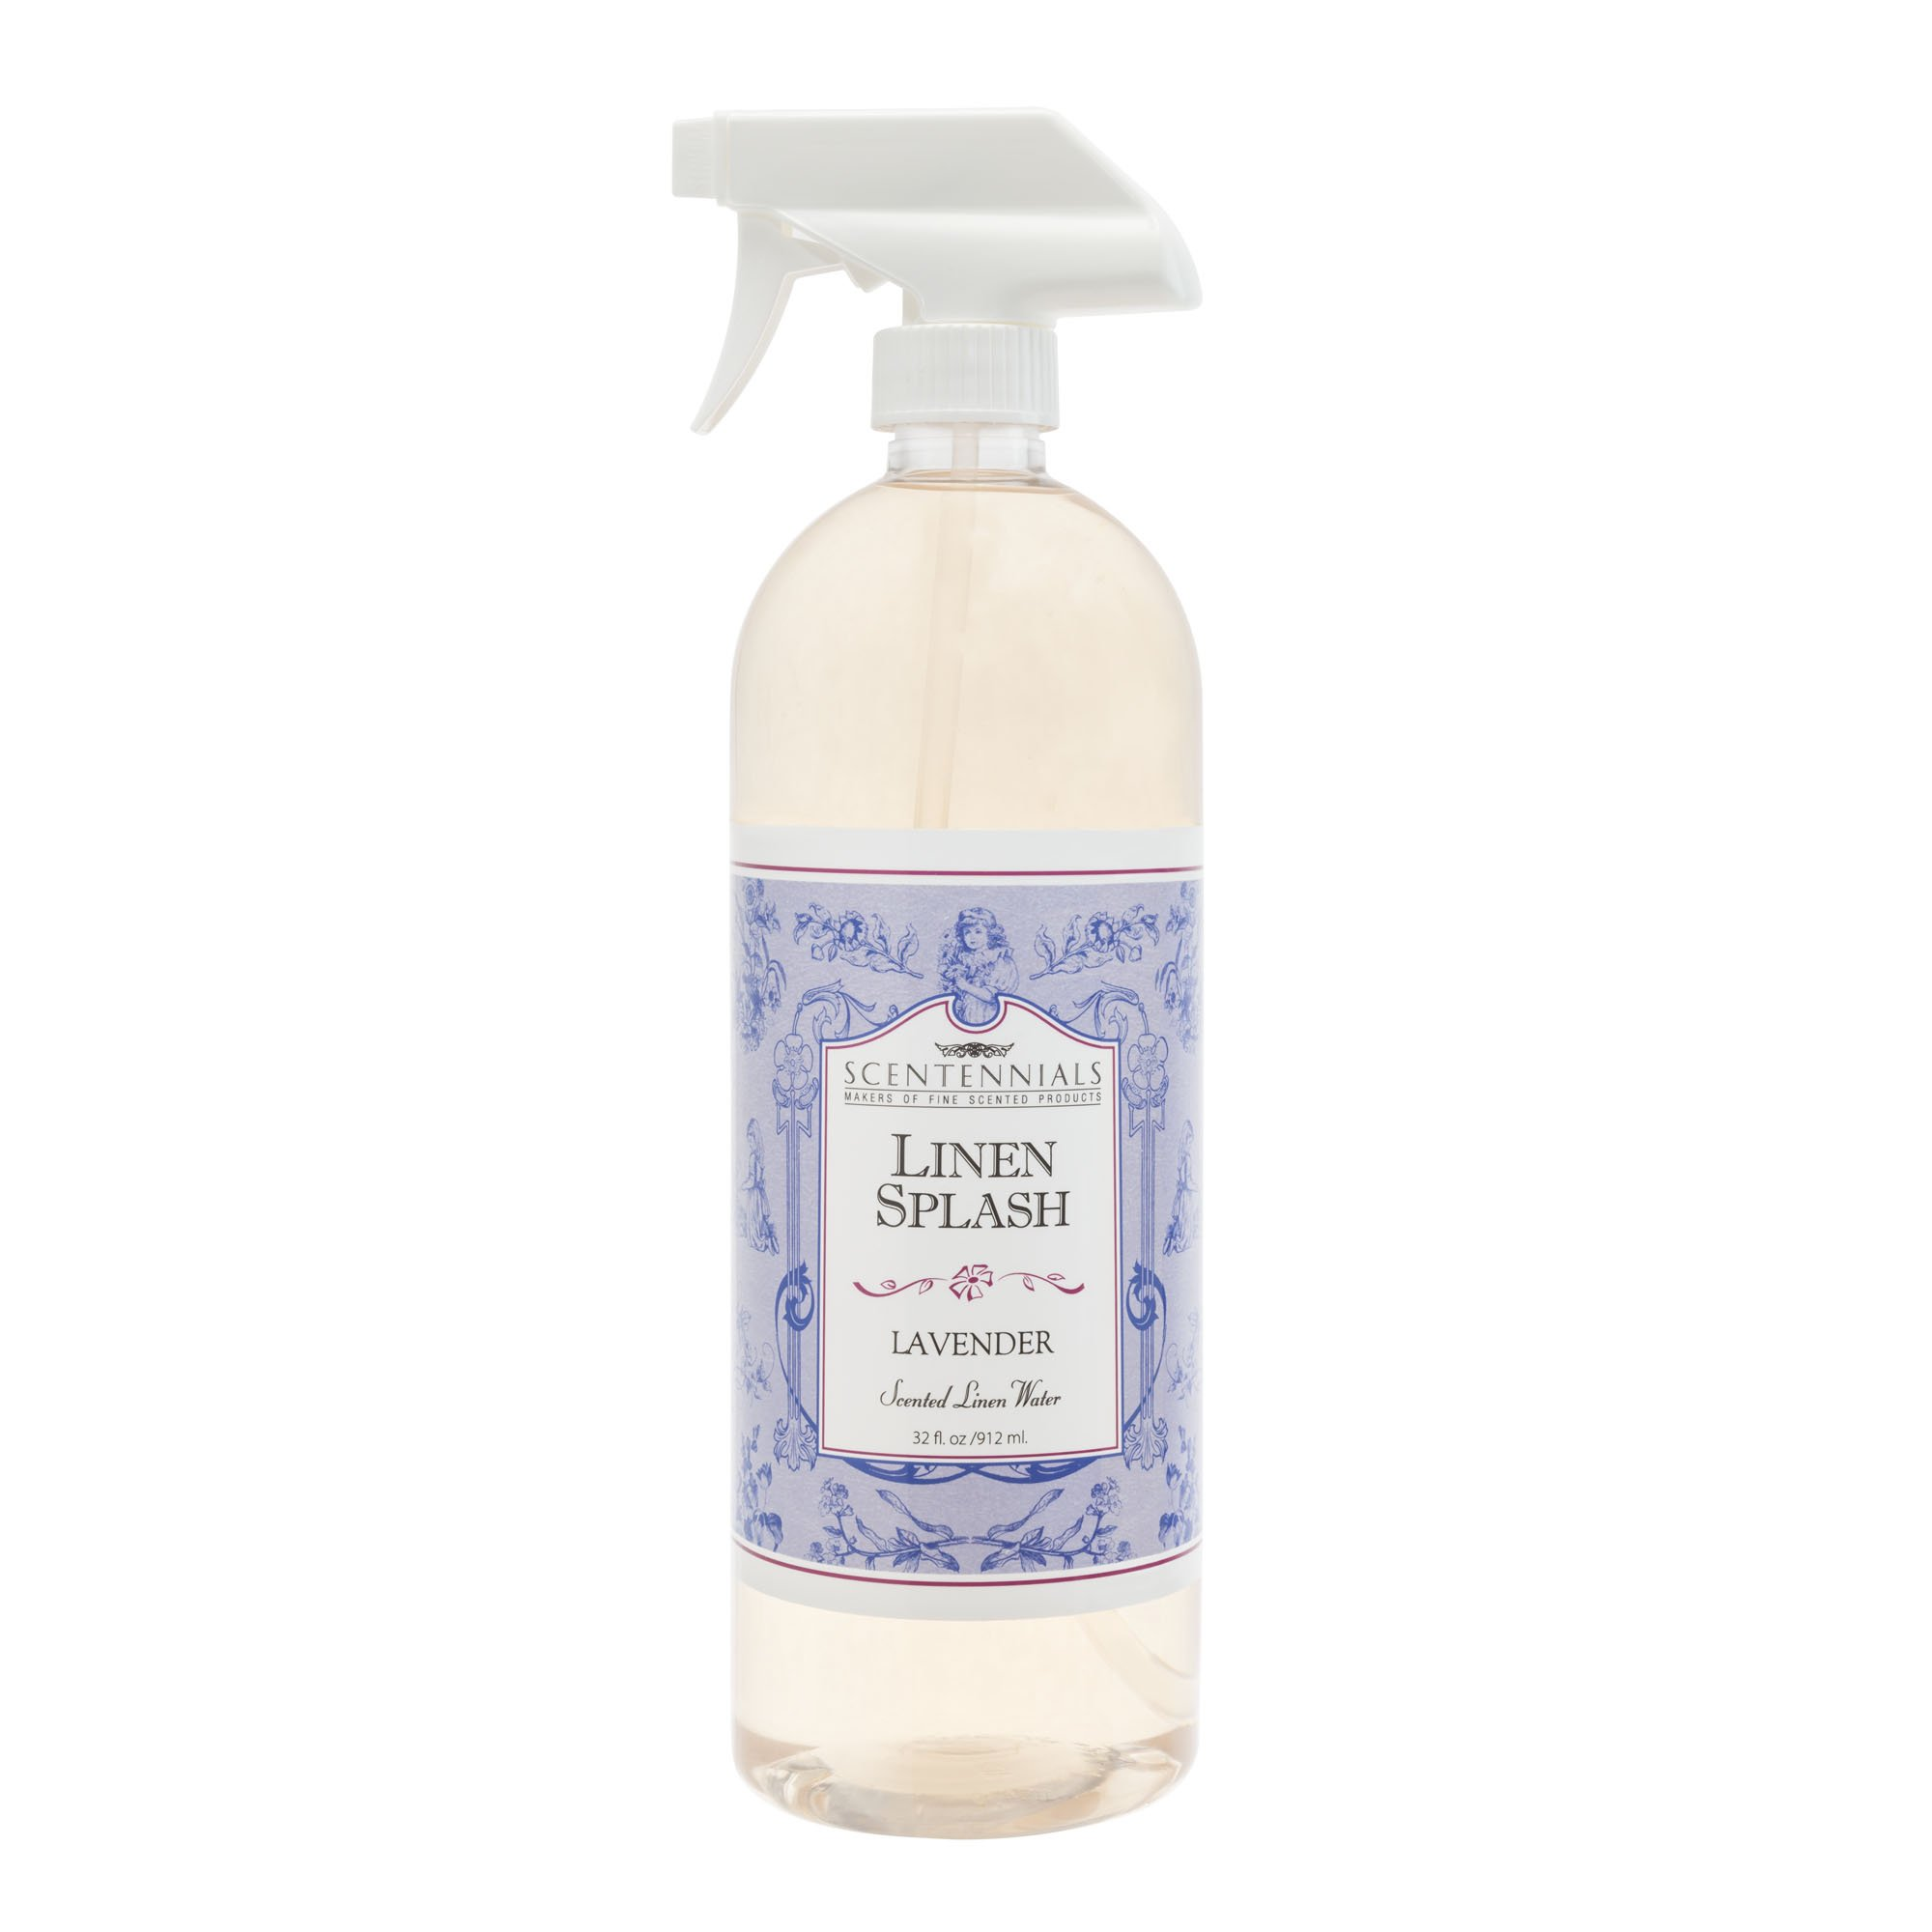 Scentennials Linen Splash LAVENDER 32oz - A MUST HAVE for all your linens, laundry basket or just spray around the house.